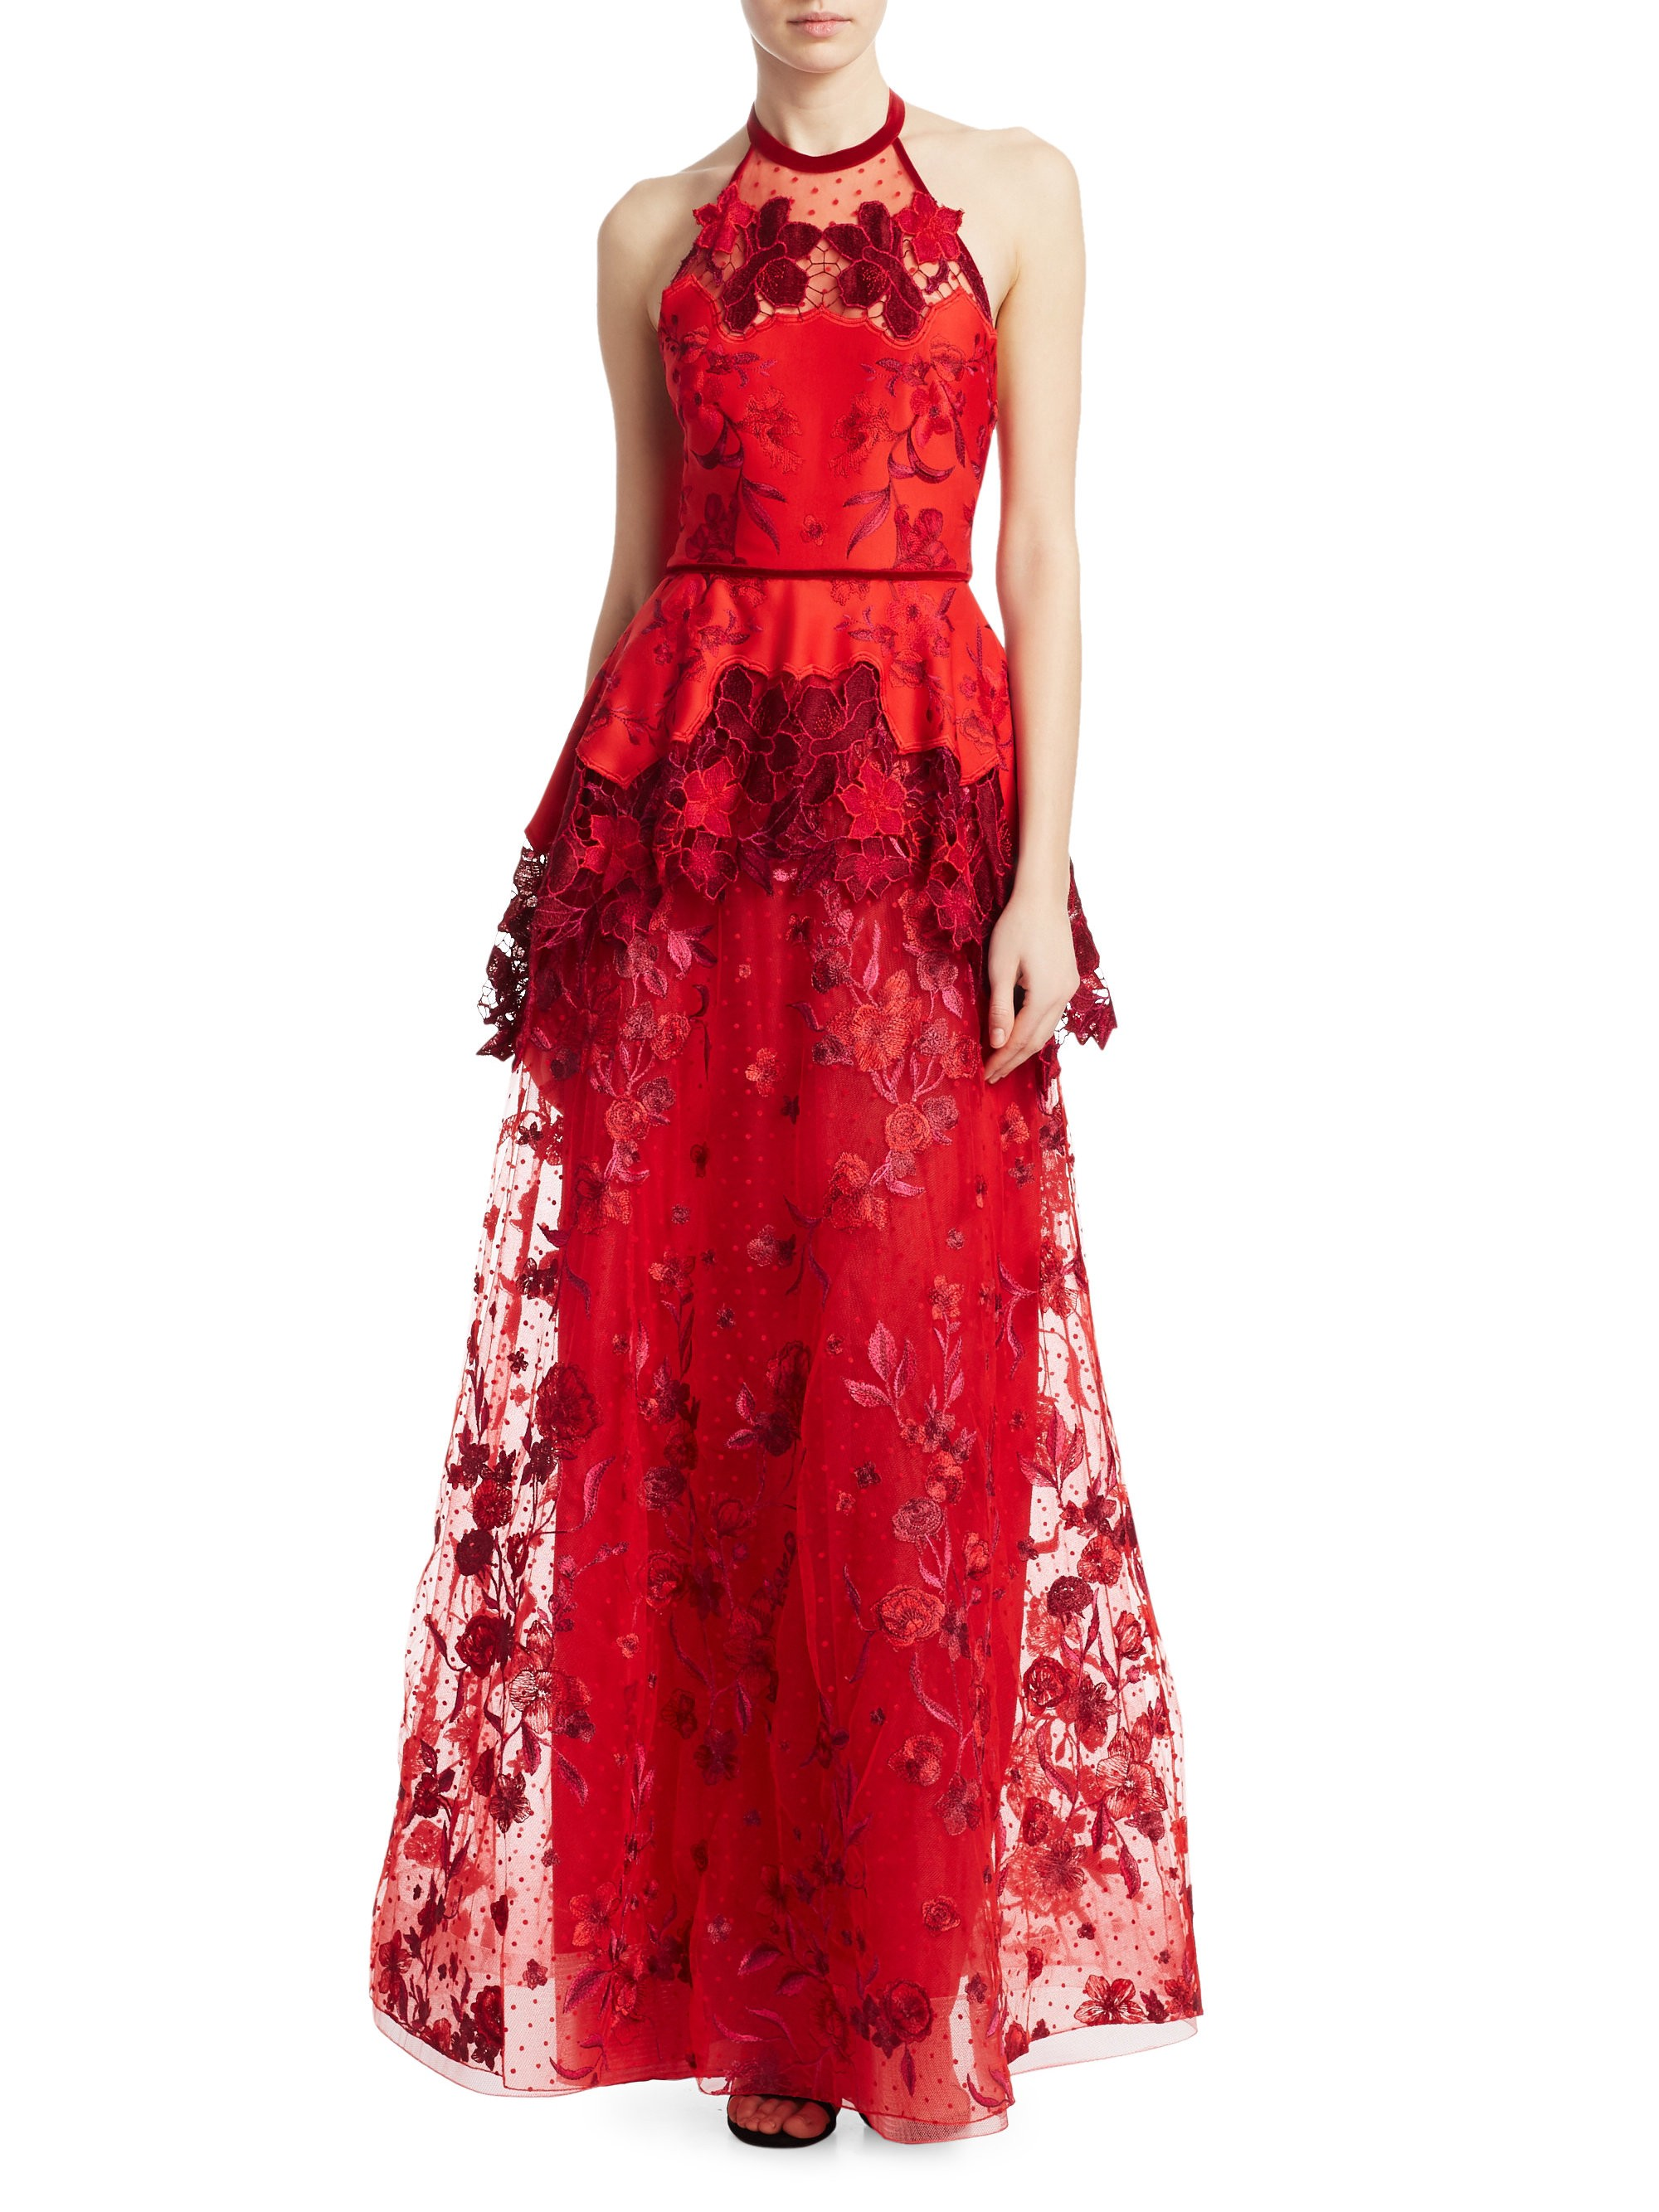 142a1142 Marchesa Notte Laser Cut Embroidered-Floral Halter Gown - Red 6 in ...